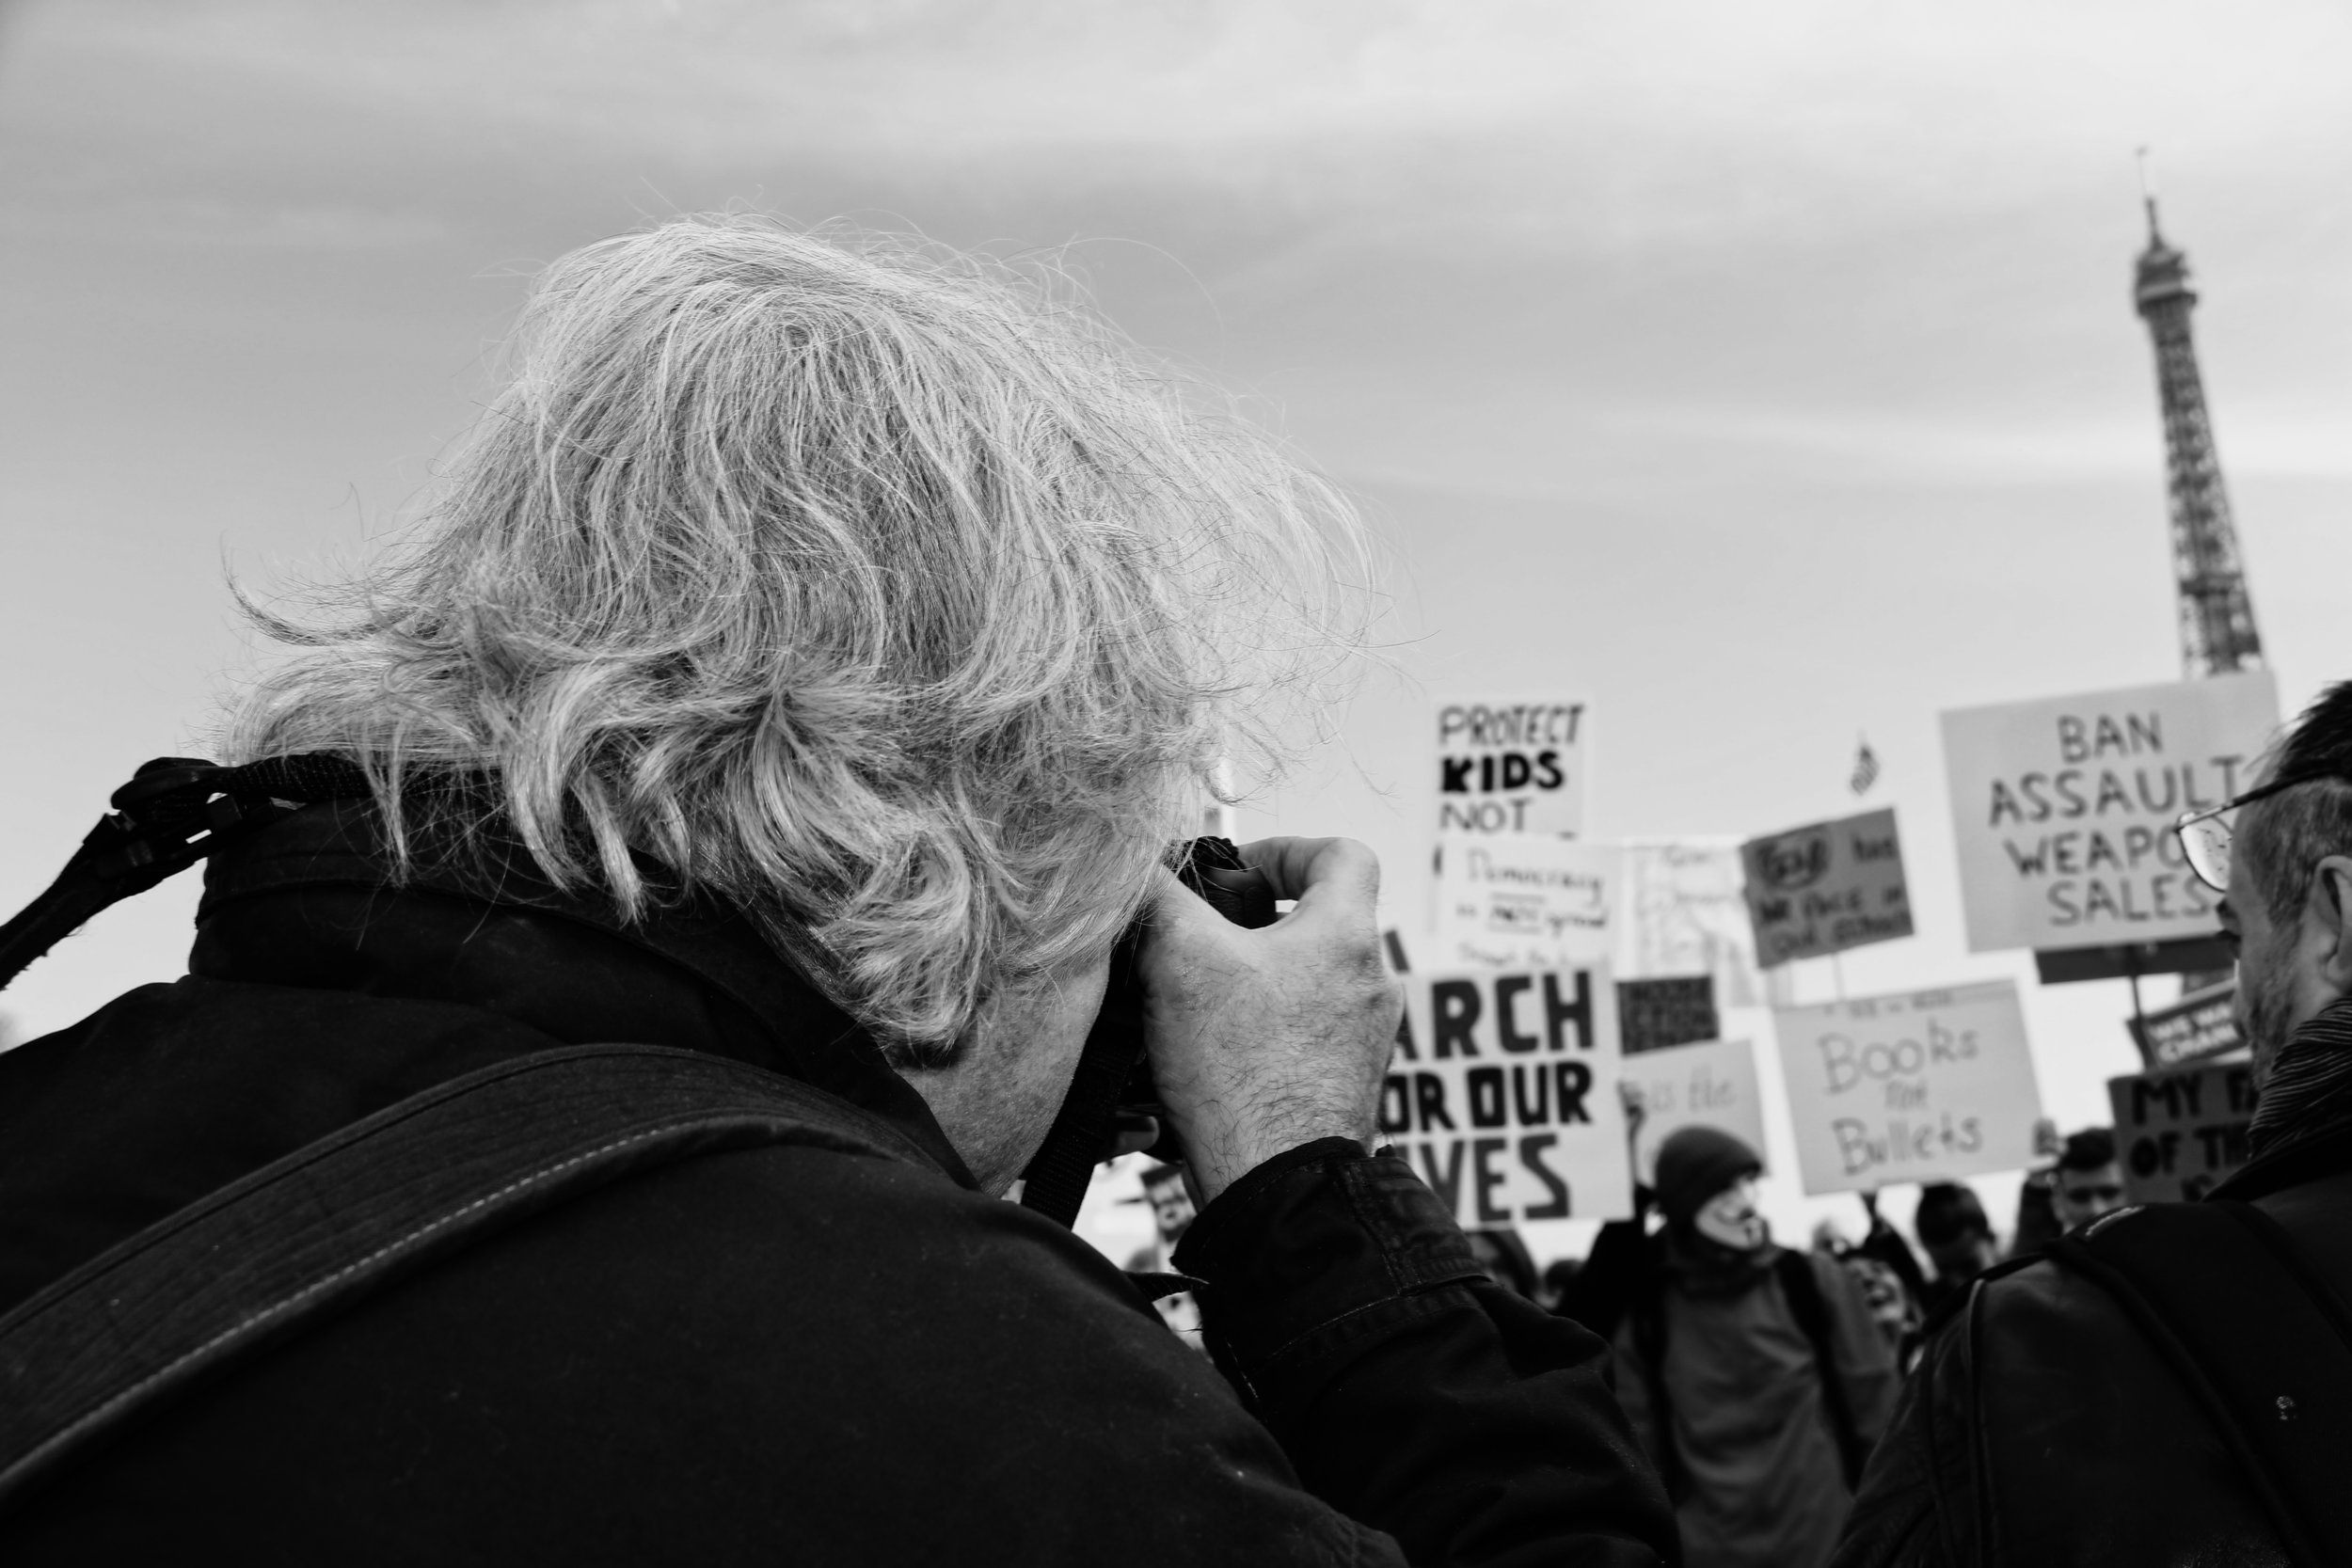 Richard Kalvar shooting at March for Our Lives in Paris, France.